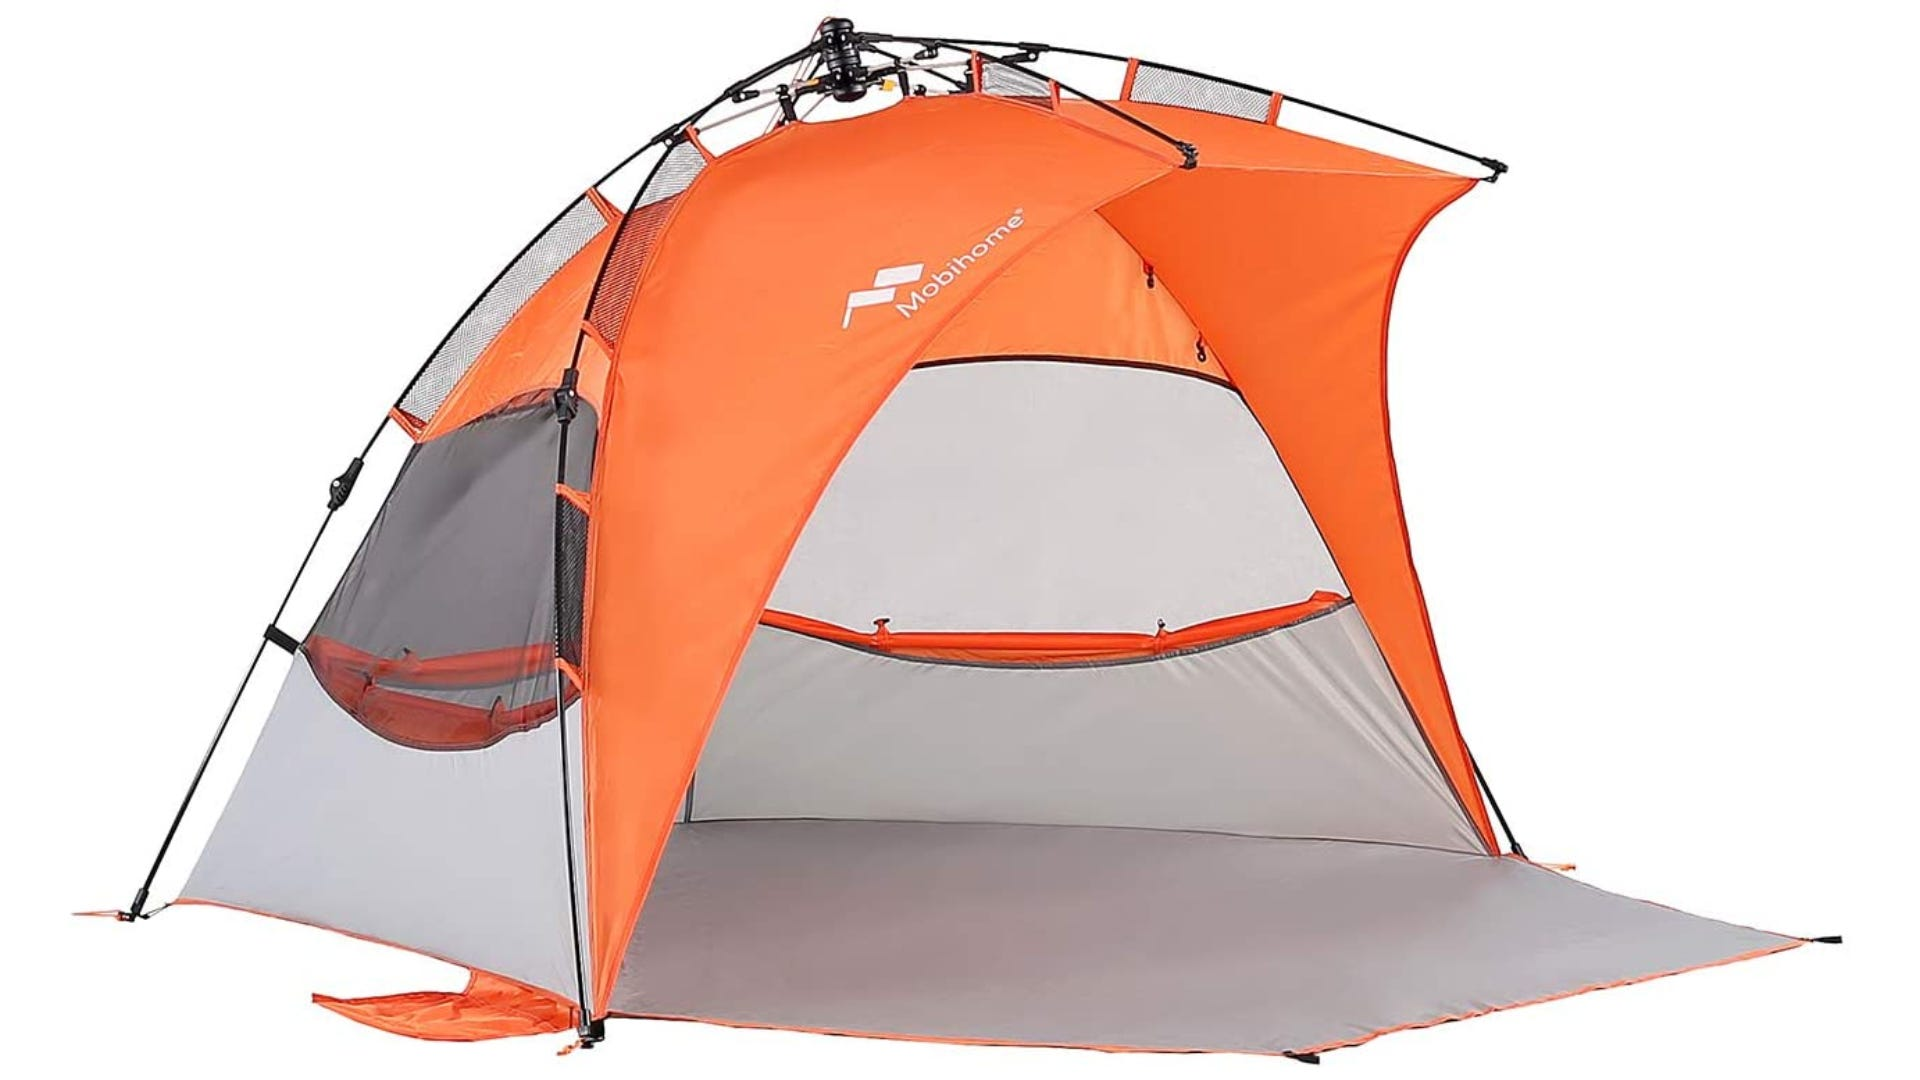 An orange canopy with a wide opening and a bottom layer of fabric.